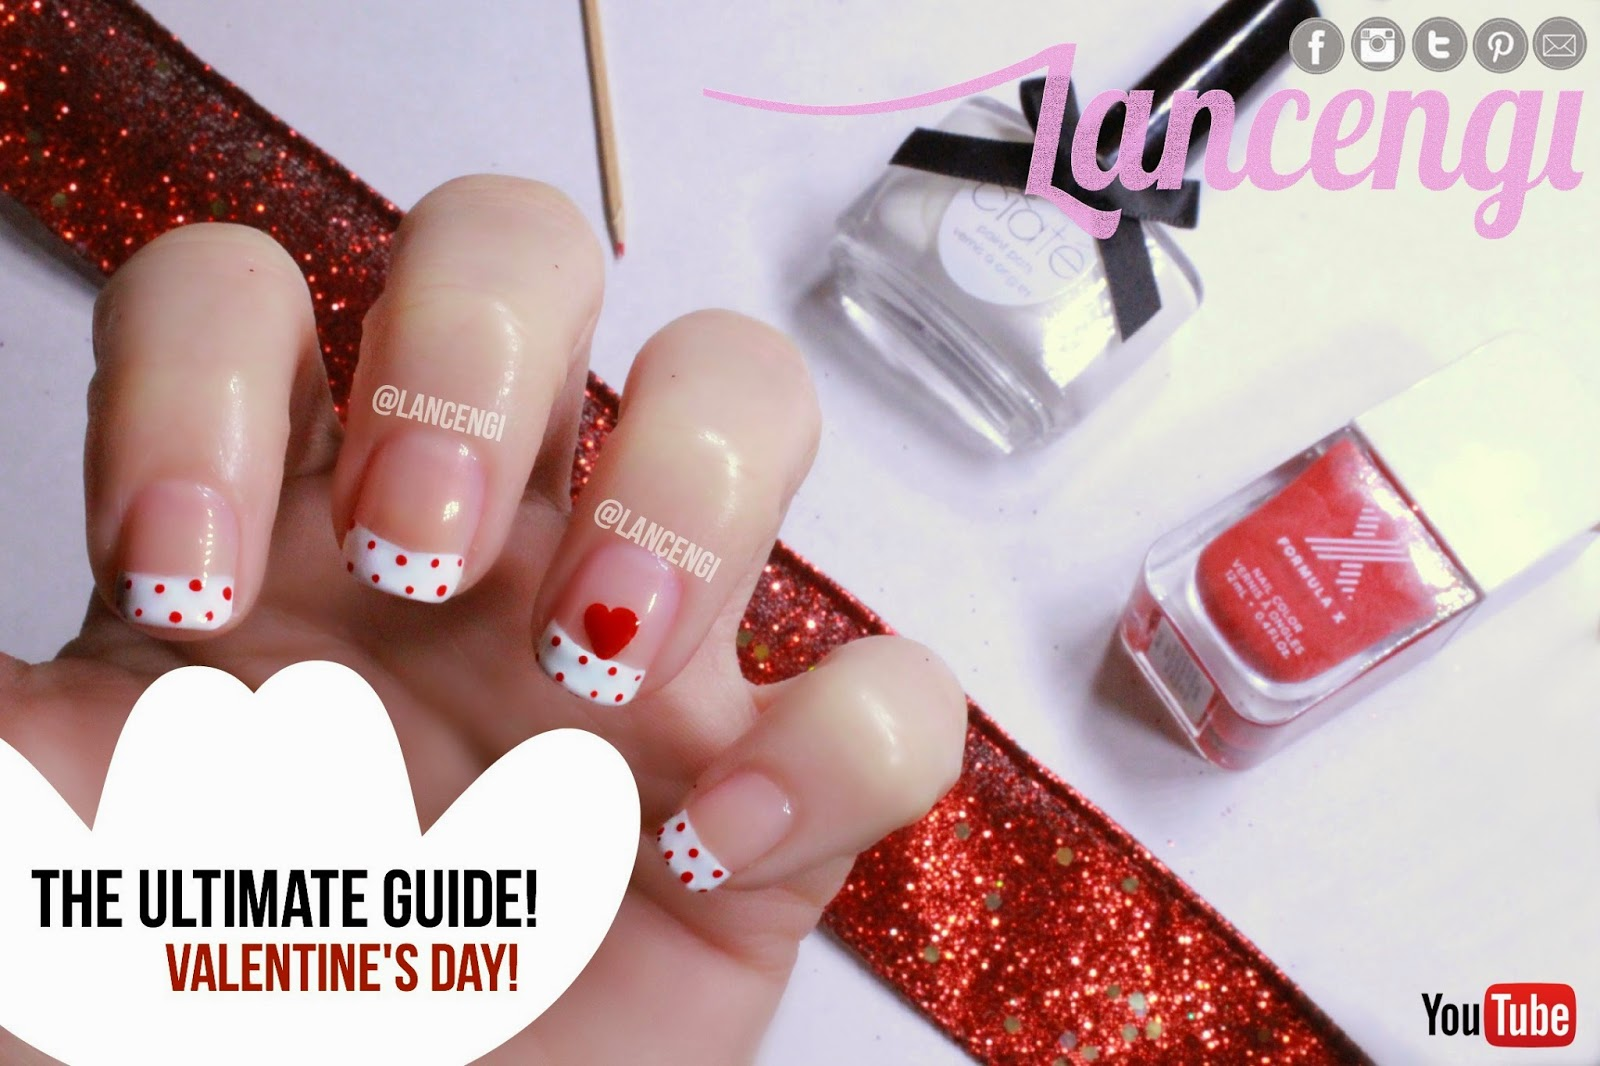 Nails lancengi nail art for valentines day cute nail polish designs the ultimate guide 1 no tools needed prinsesfo Images